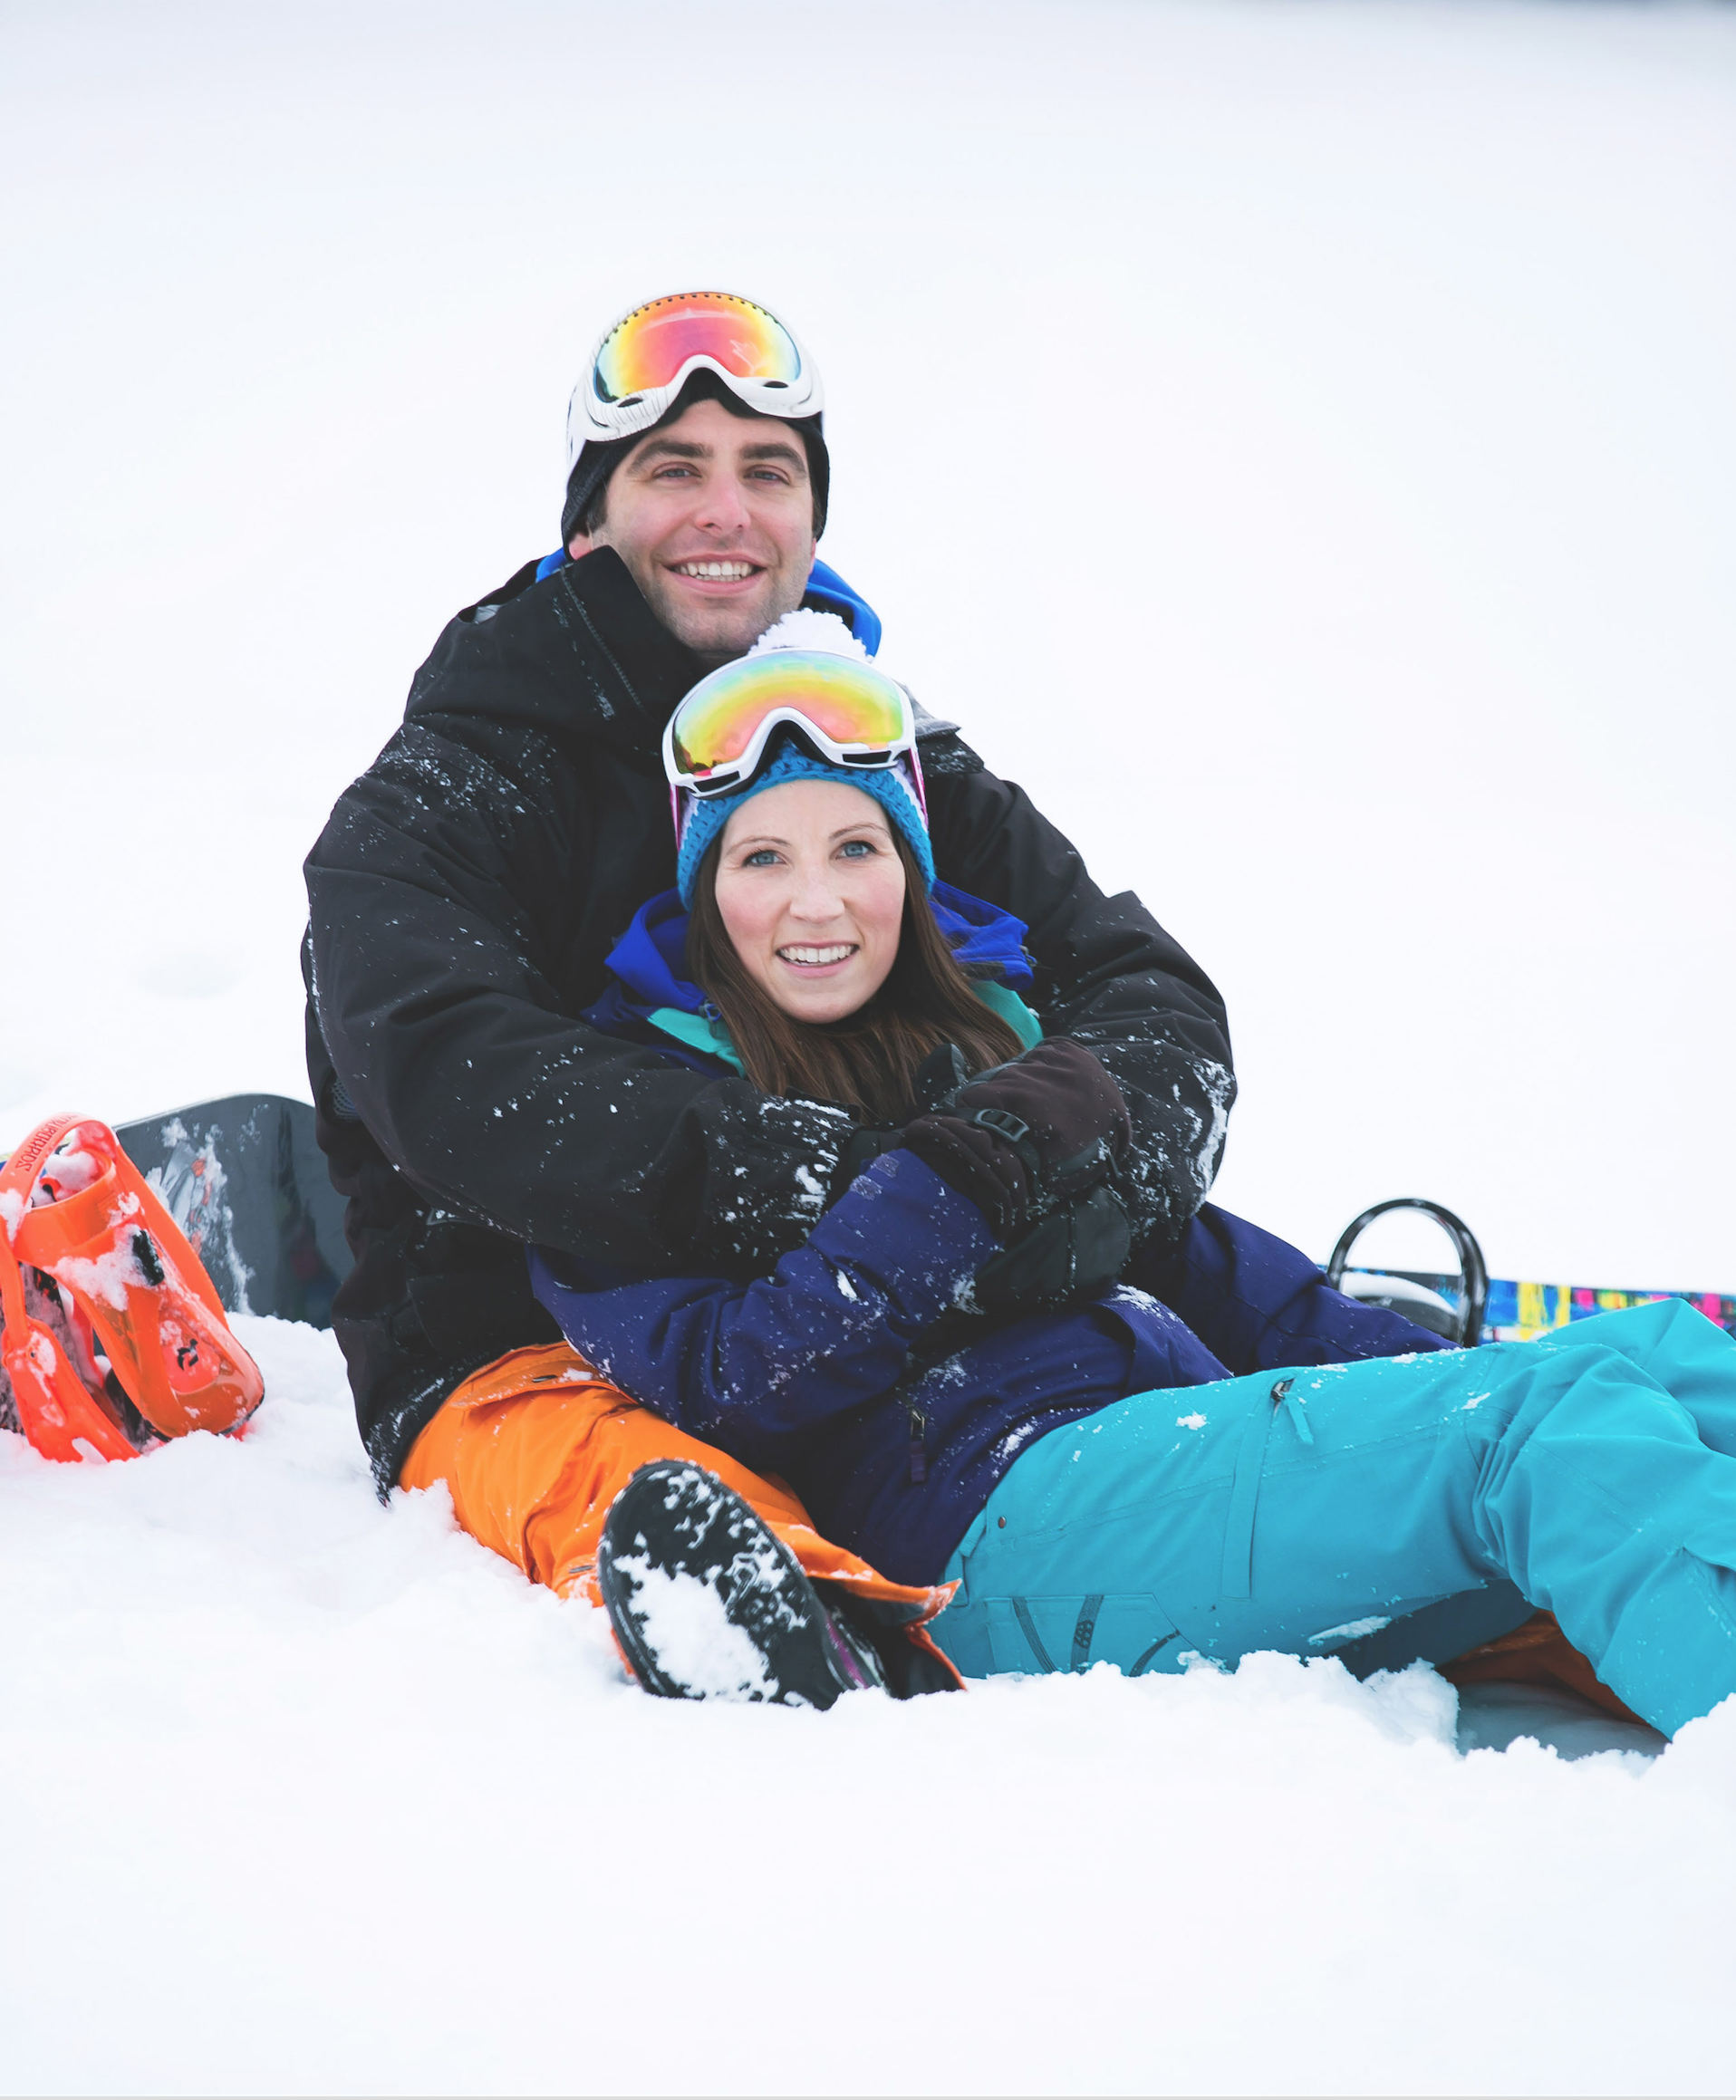 Engagement-Photos-Hamilton-Niagara-Toronto-Burlington-Oakville-Photographer-Engaged-Ring-Photography-Snowboarding-Winter-Moments-by-Lauren-Image-7.png